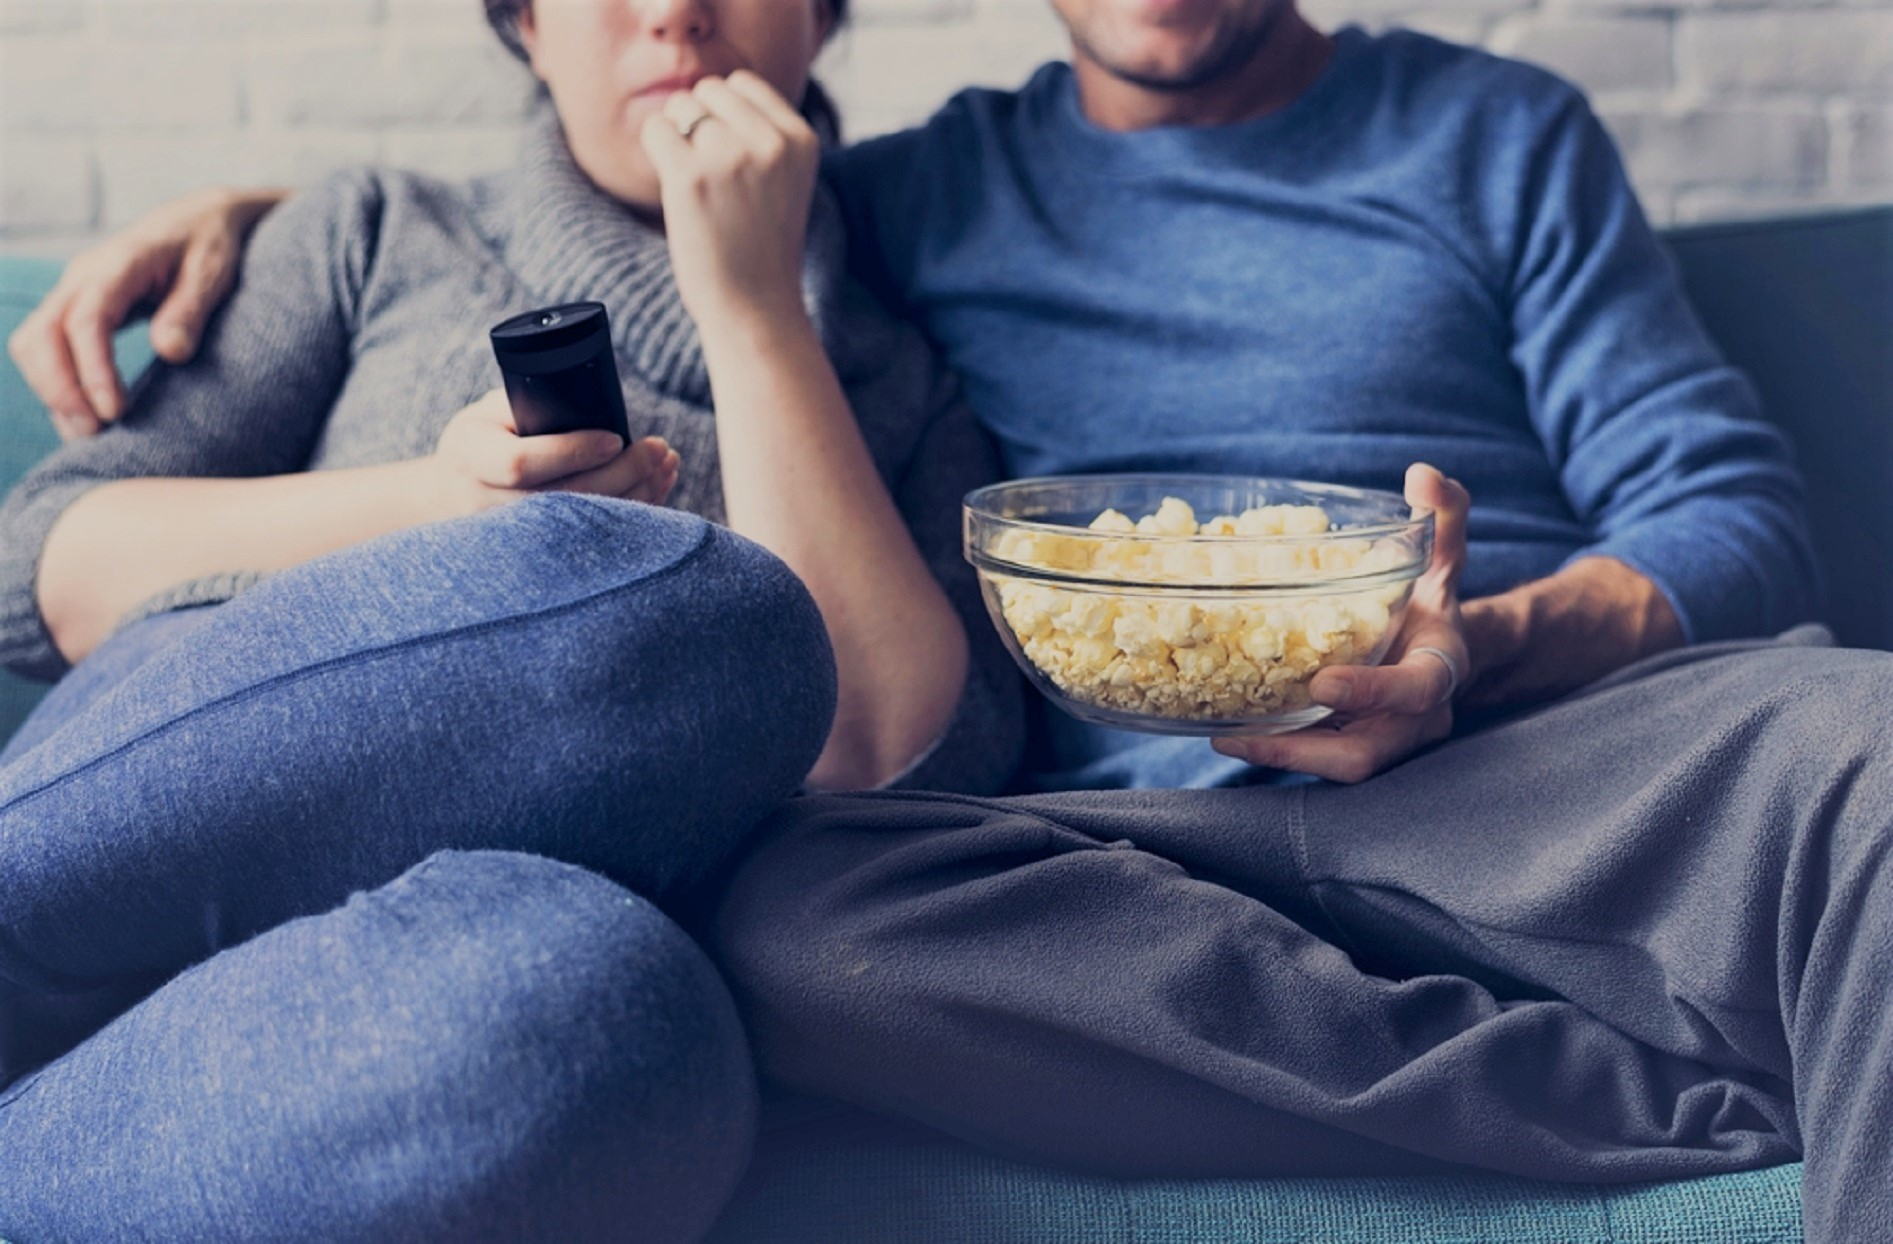 Couple Holding TV Remote and Bowl of Popcorn